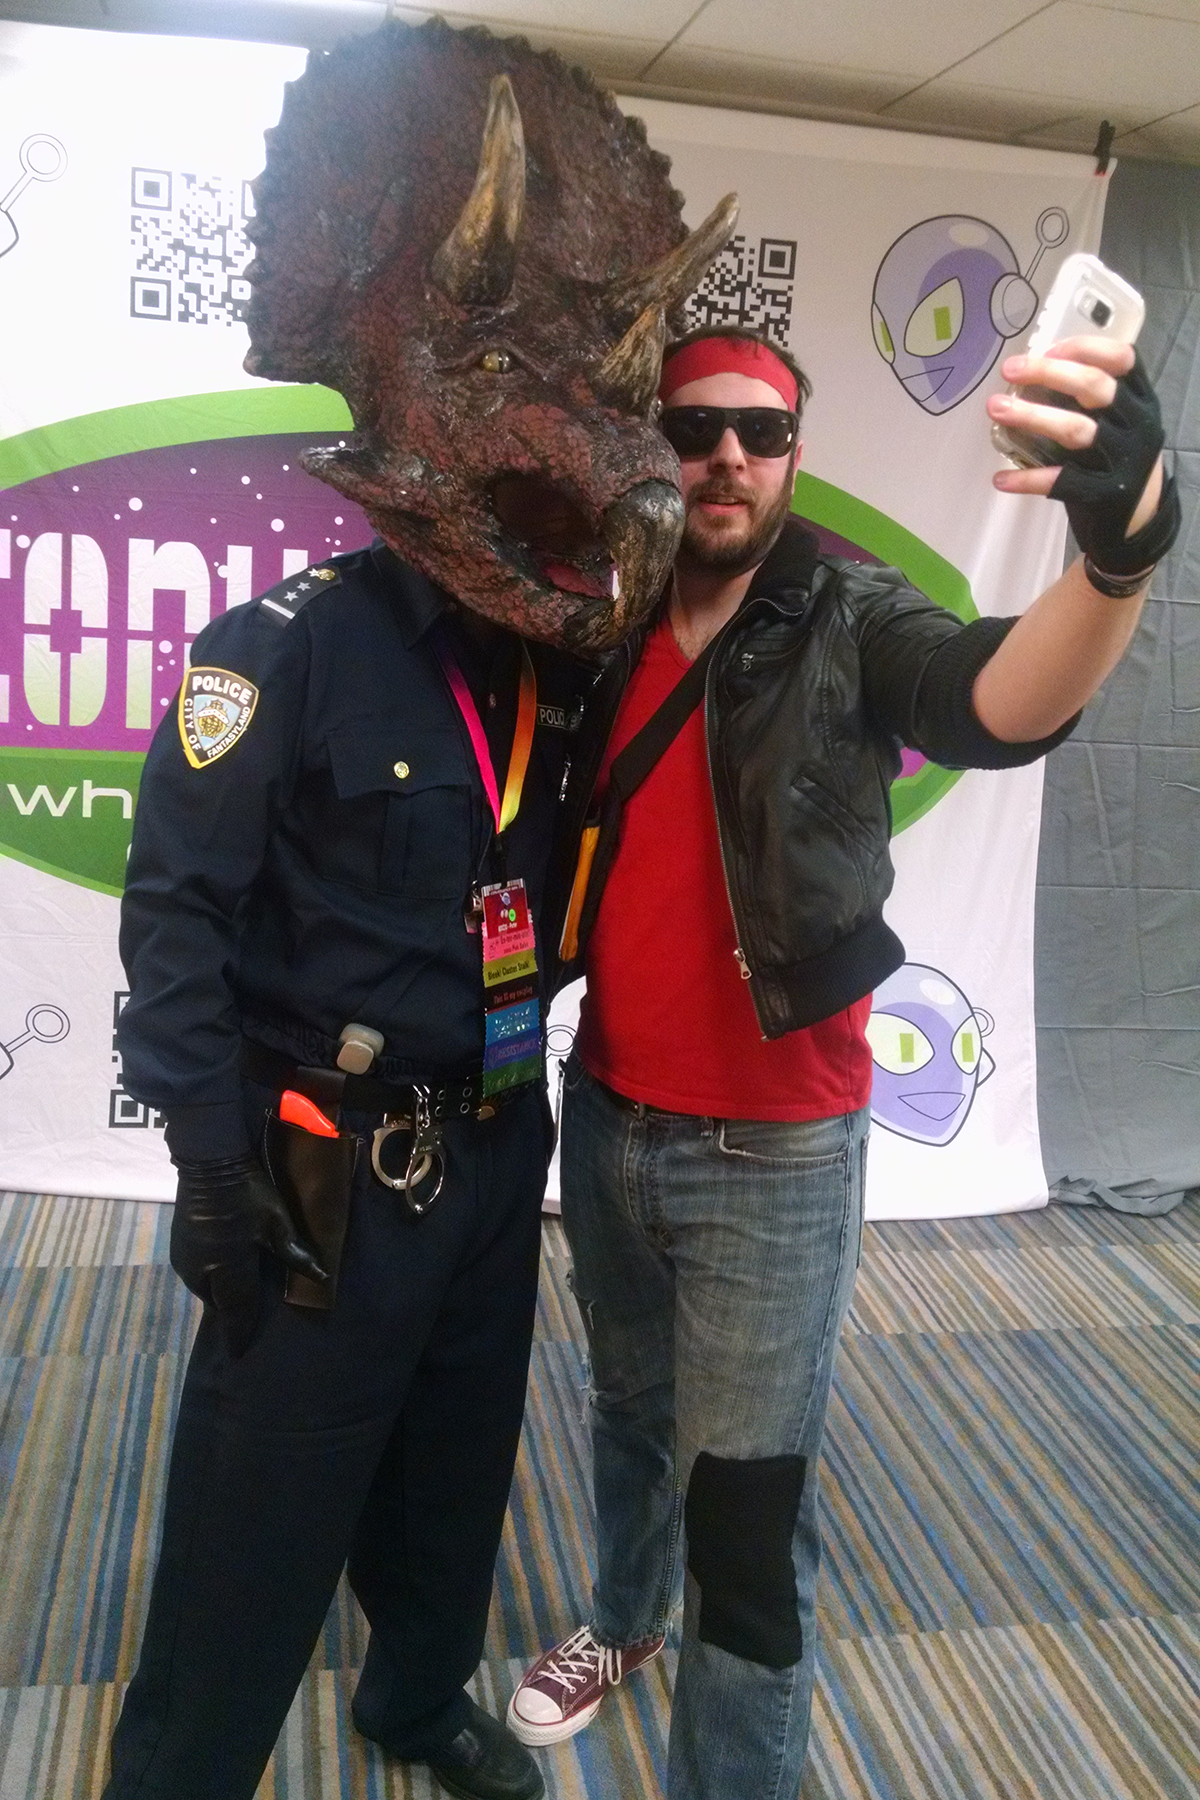 Two cosplayers taking a selfie together. One is dressed as Kung Fury, the other as Triceracop.